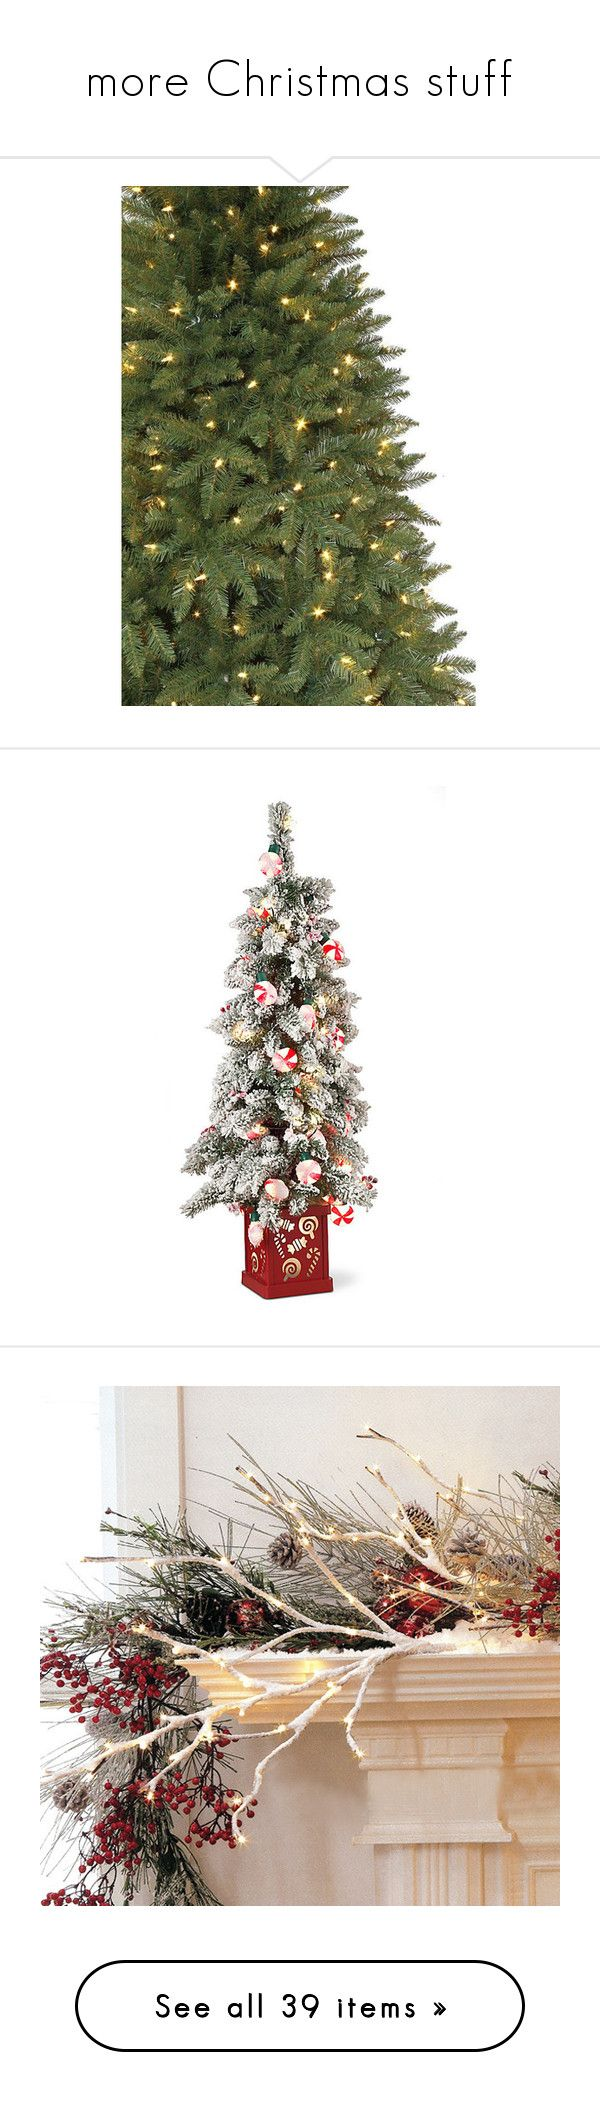 Crestwood small artificial christmas tree with plastic bronze pot -  More Christmas Stuff By Loves Elephants Liked On Polyvore Featuring Home Small Christmas Treesartificial